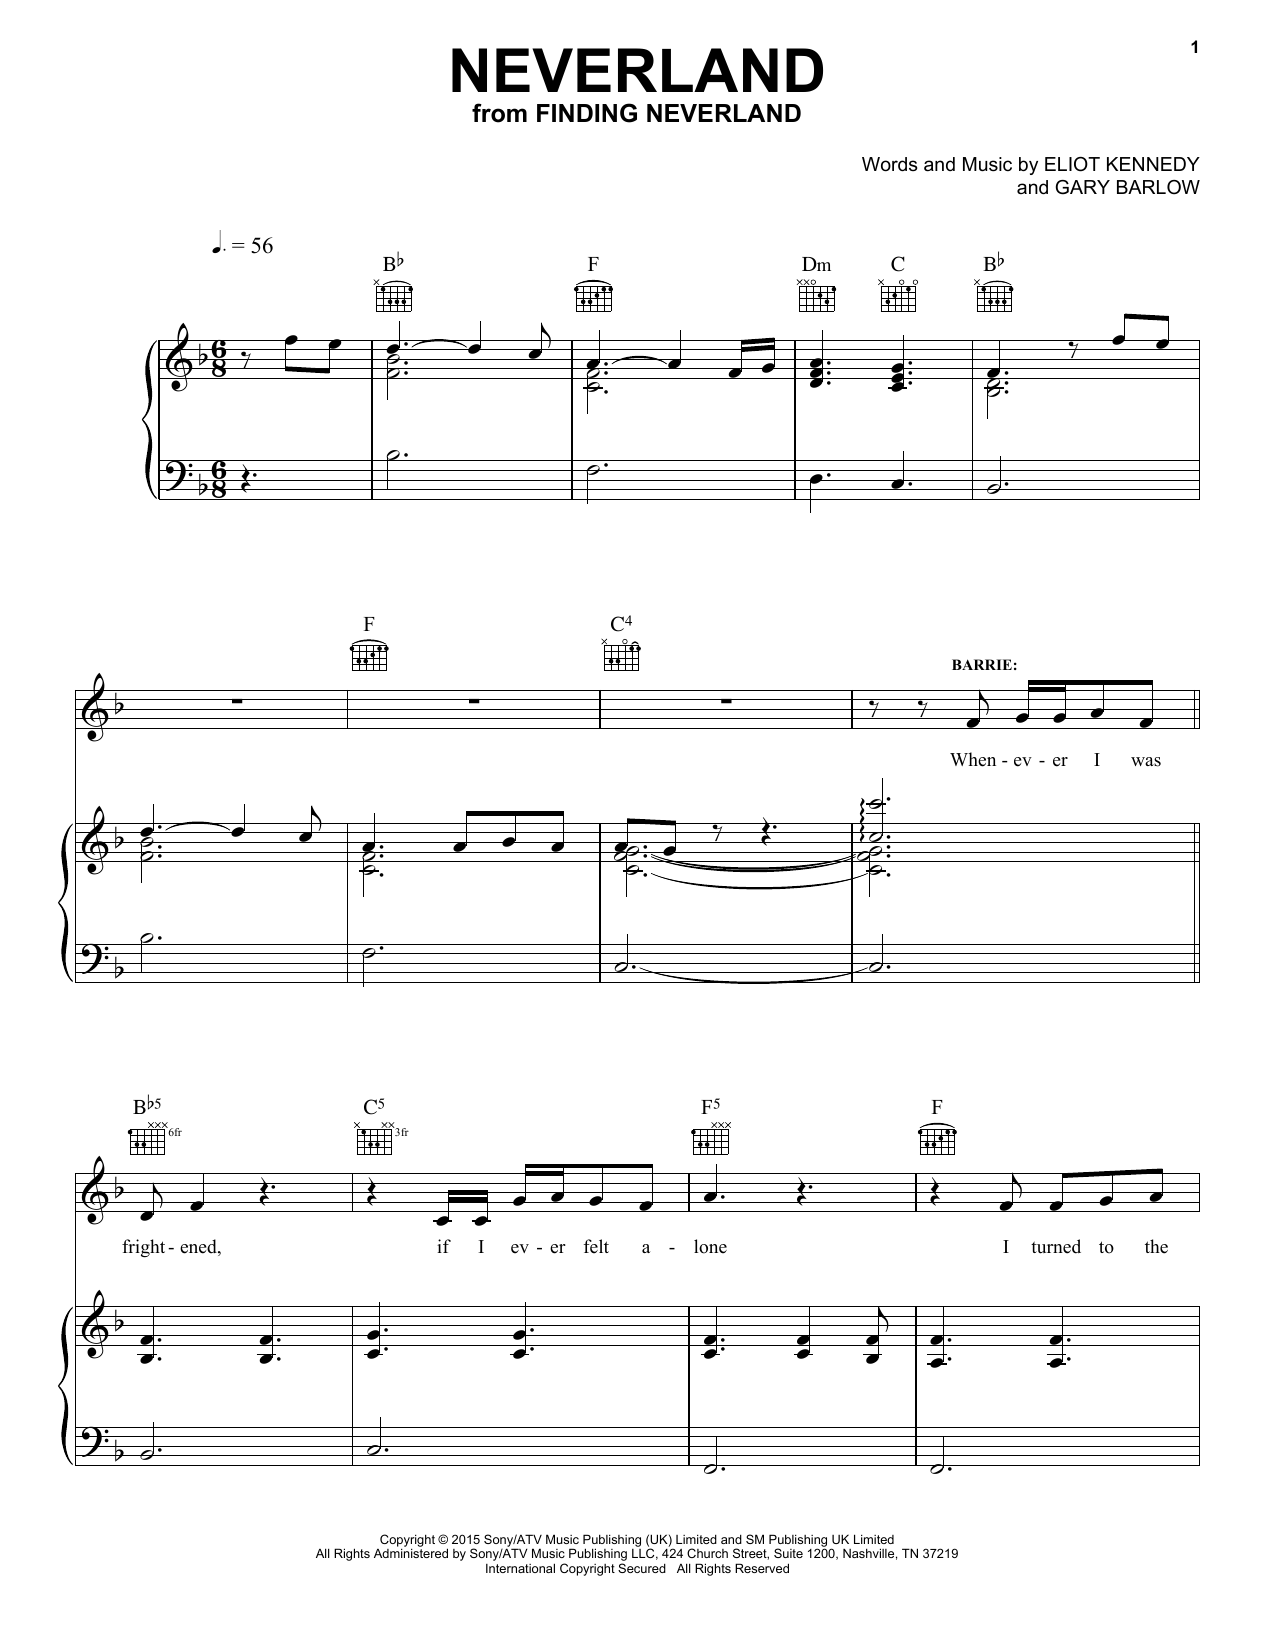 Gary Barlow & Eliot Kennedy Neverland sheet music notes and chords. Download Printable PDF.